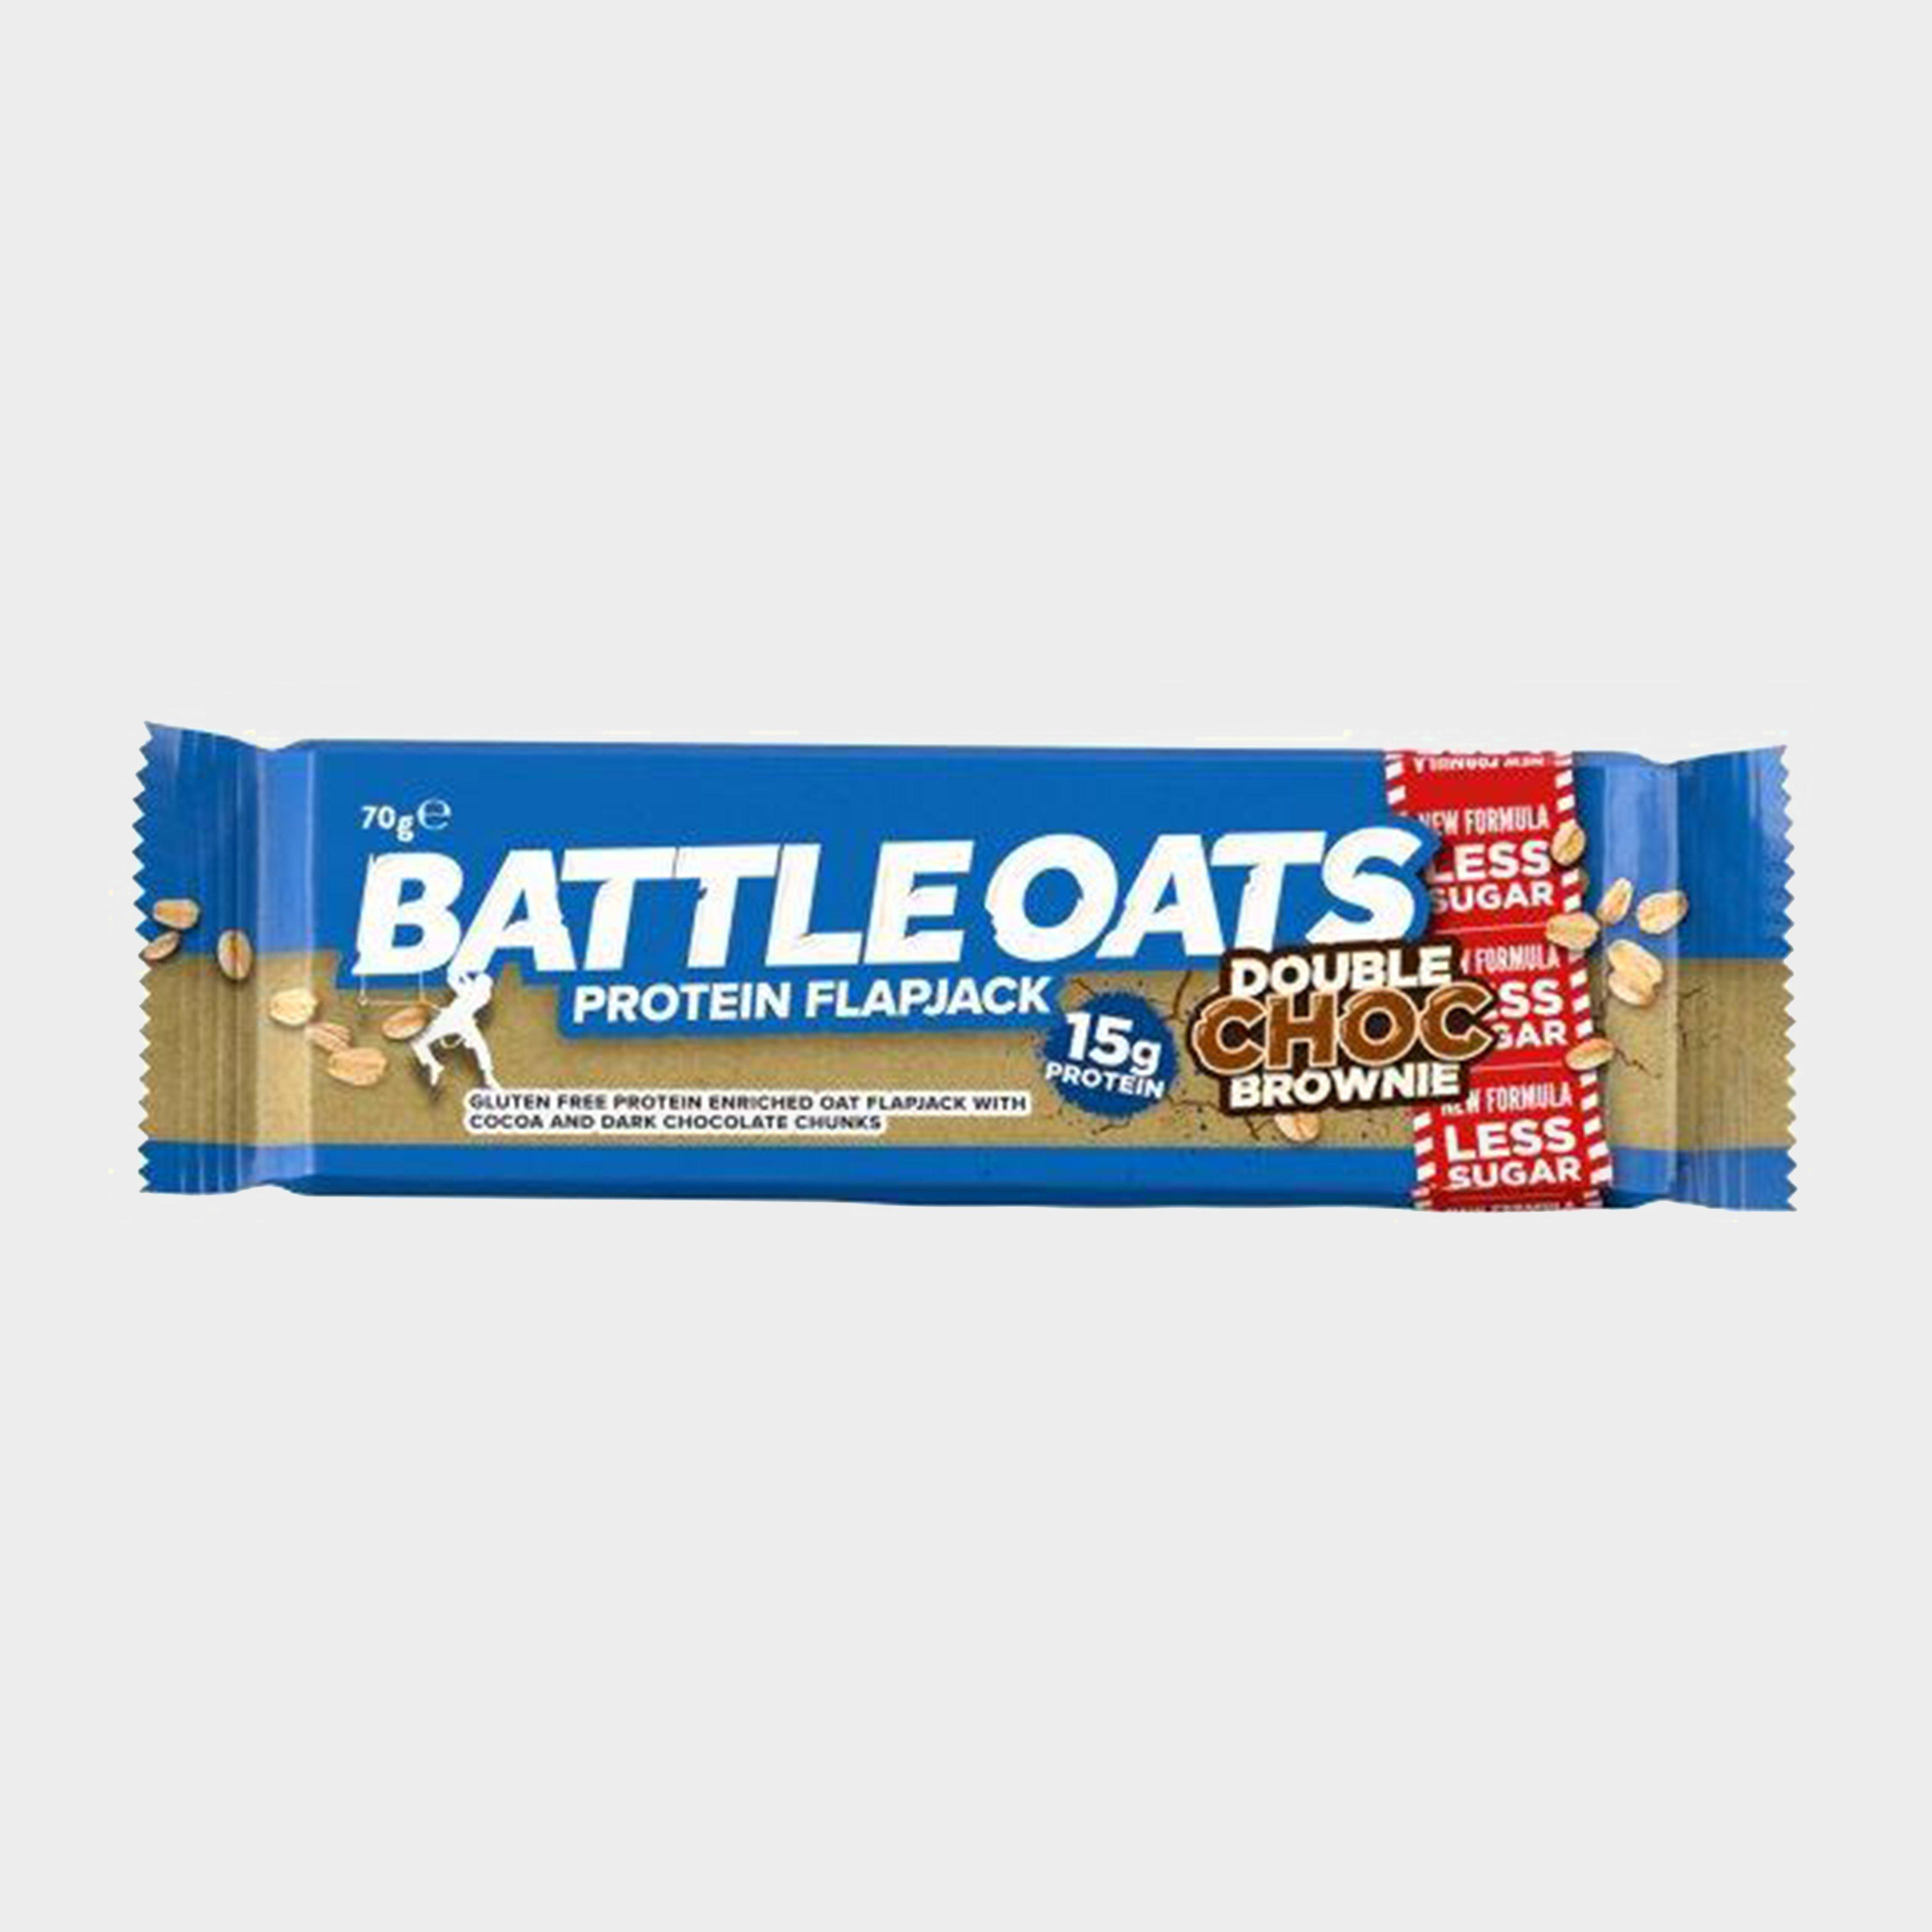 2 Boxes Battle Oats Protein Flapjack 12x70g Free UK Tracked Delivery All Flavour